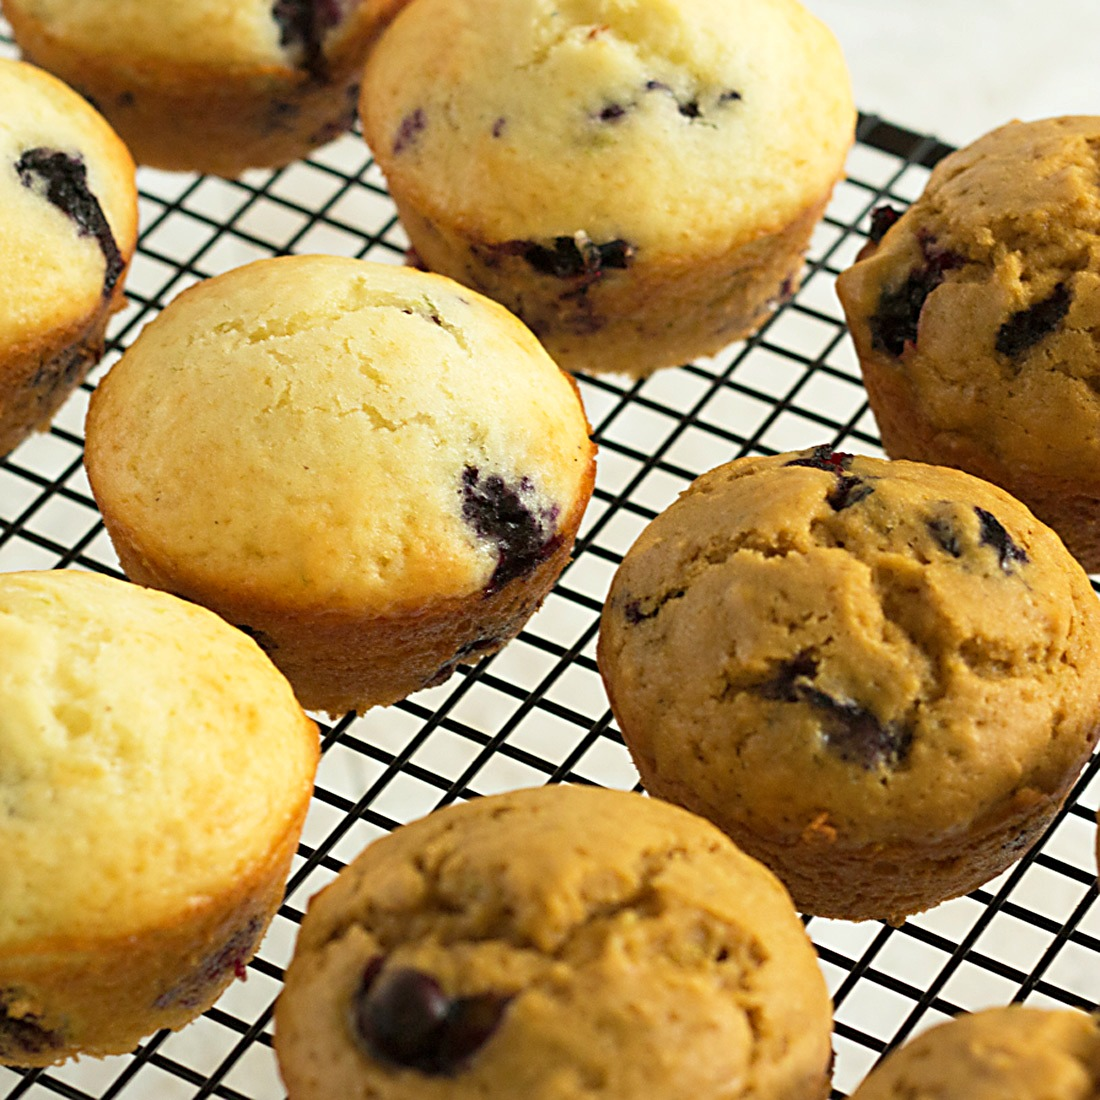 This blueberry lime protein muffins recipe will give you moist, fluffy muffins that are bursting with healthy ingredients and loaded with great flavor.